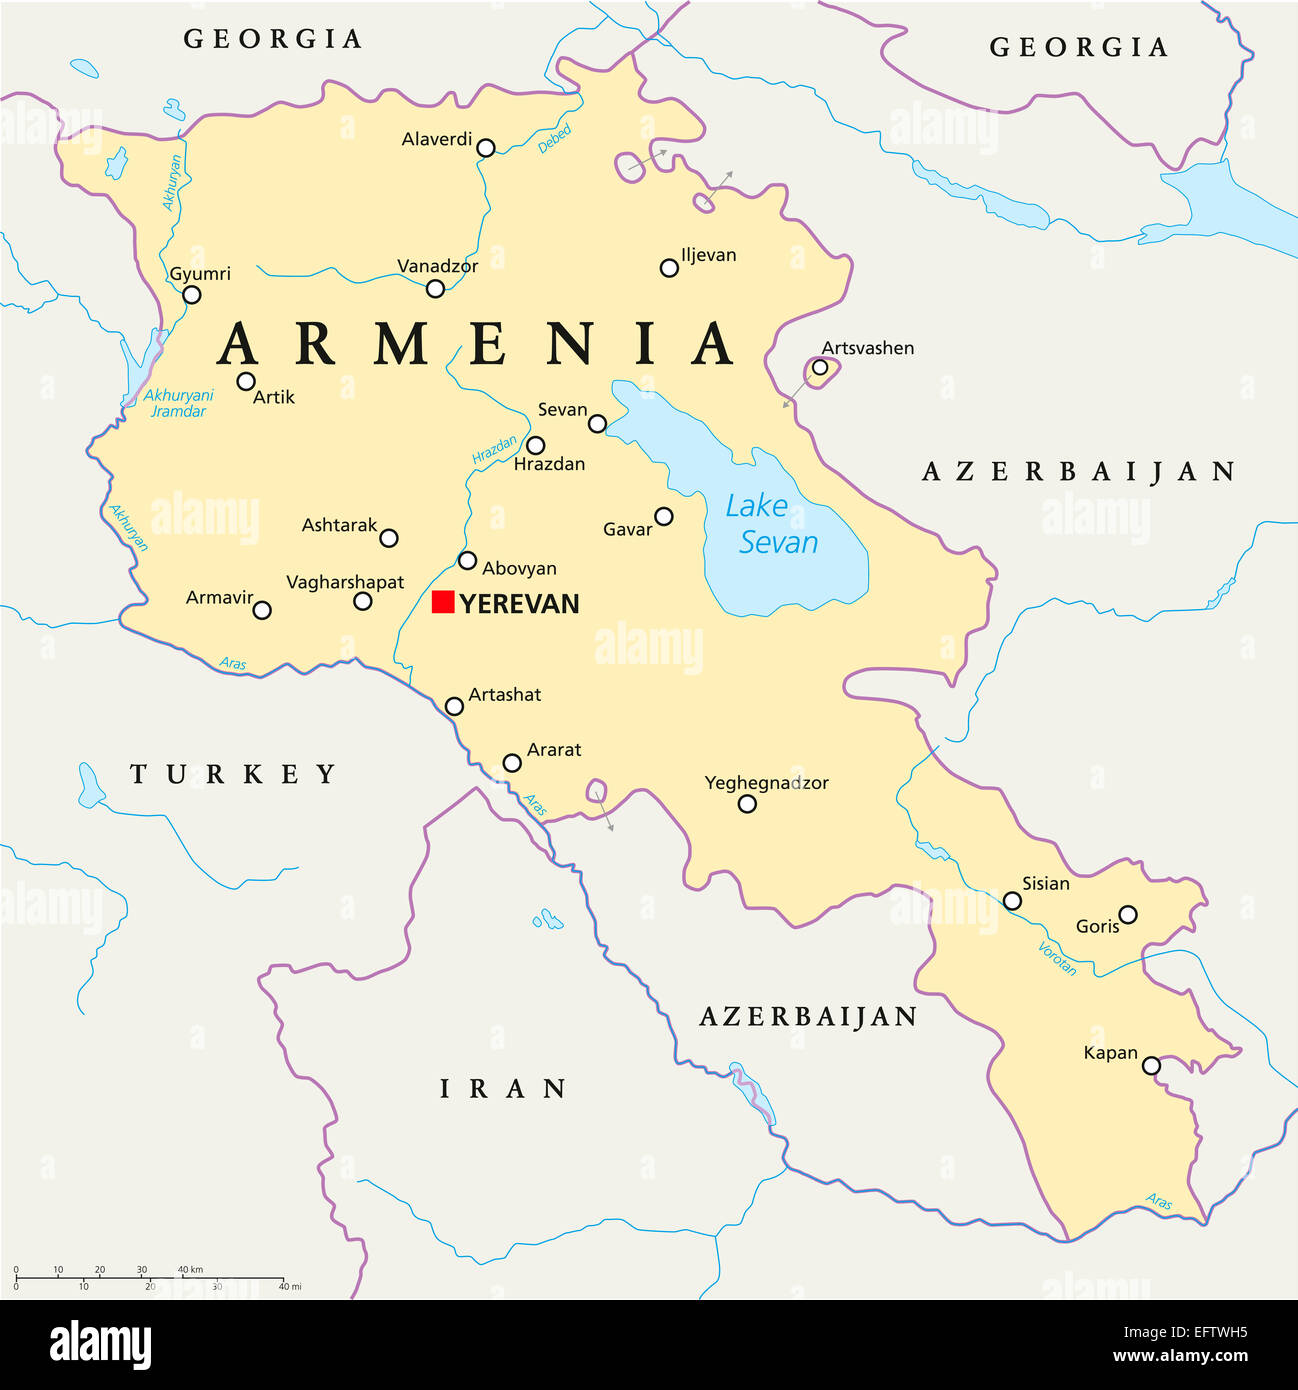 Armenia Political Map with capital Yerevan, national borders, important cities, rivers and lakes. English labeling - Stock Image